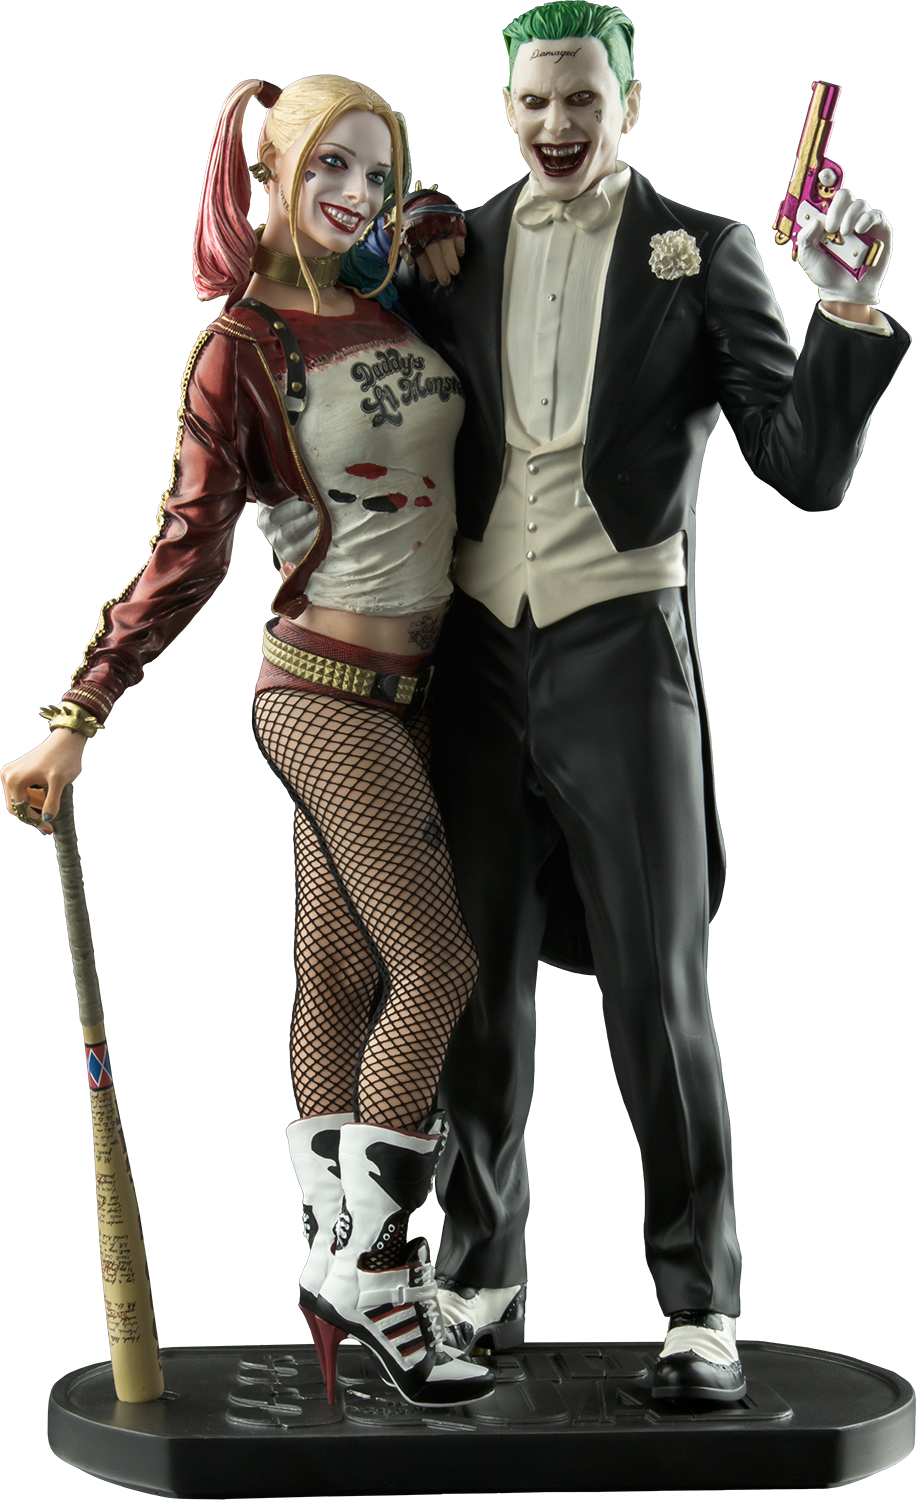 Download Joker And Harley Quinn 12 Statue Suicide Squad Joker Harley Quinn Statue Toy Full Size Png Image Pngkit